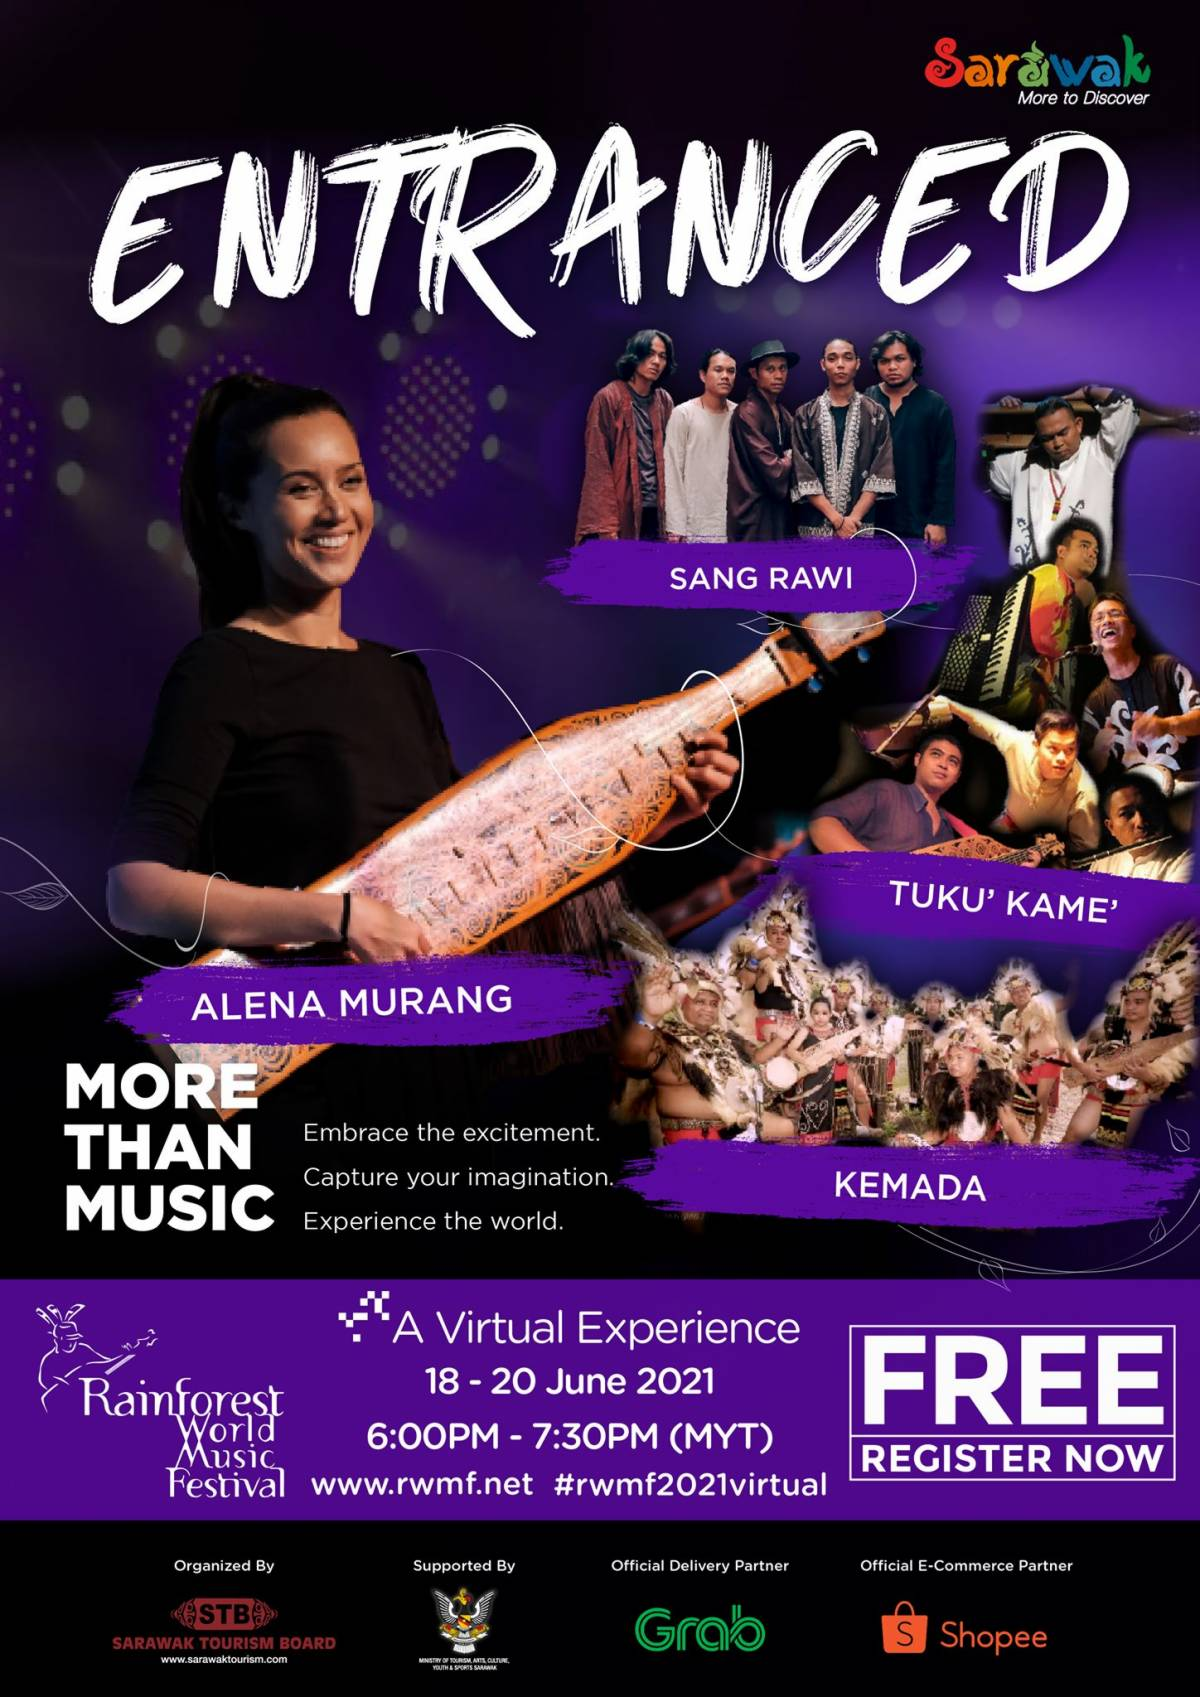 Mark your calendars for the virtual experience of the Rainforest World Music Festival on June 18-20.